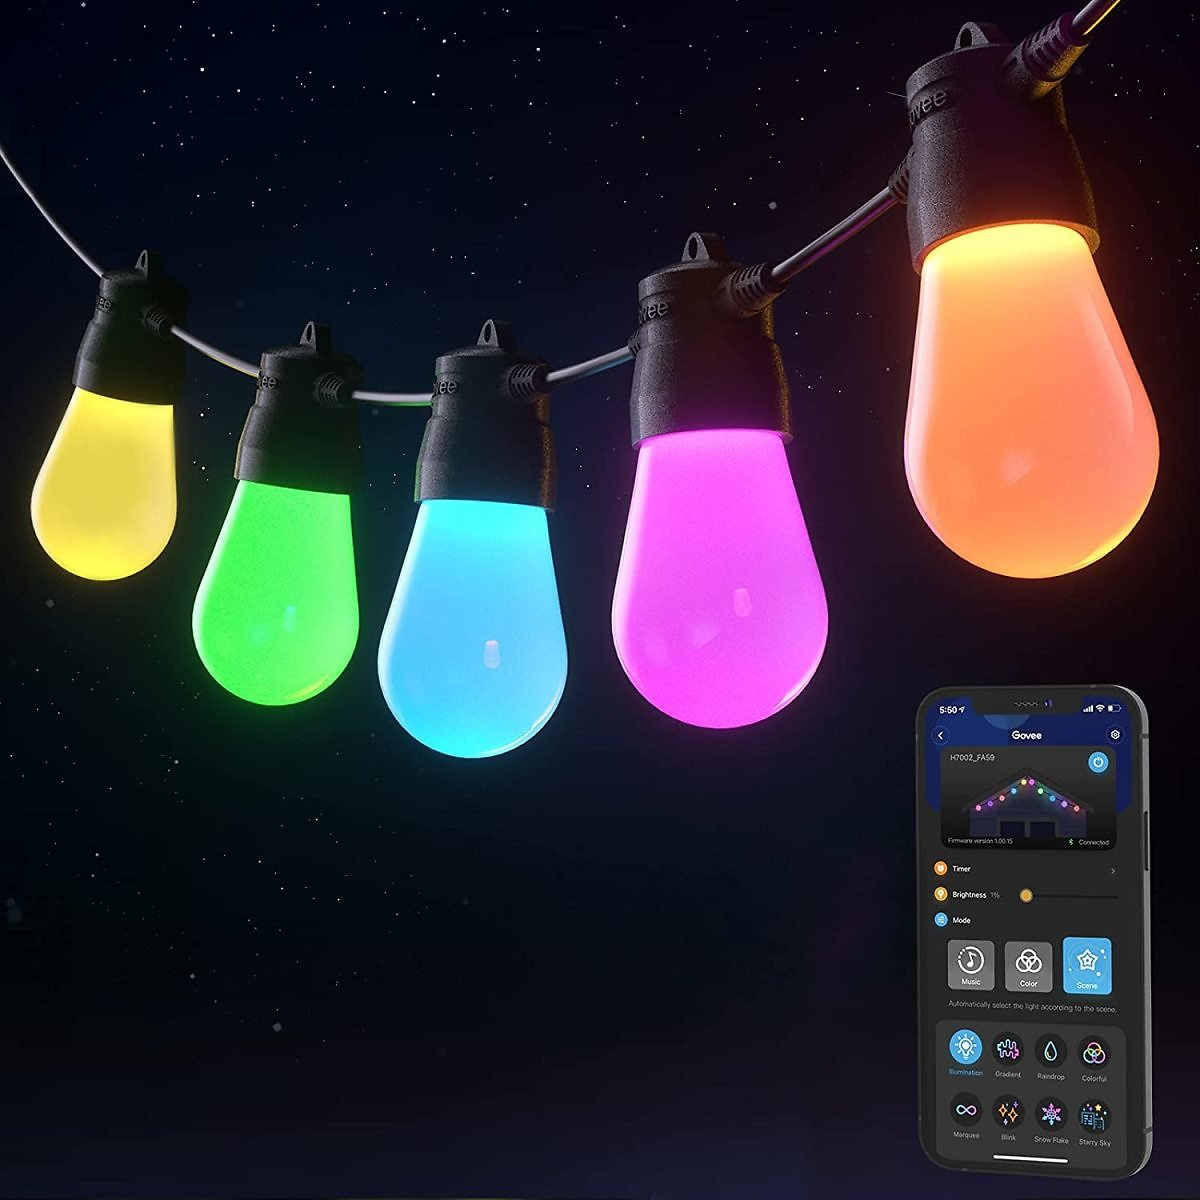 Govee 48FT Shatter-Proof Bluetooth RGBW Outdoor String Lights for $28.49